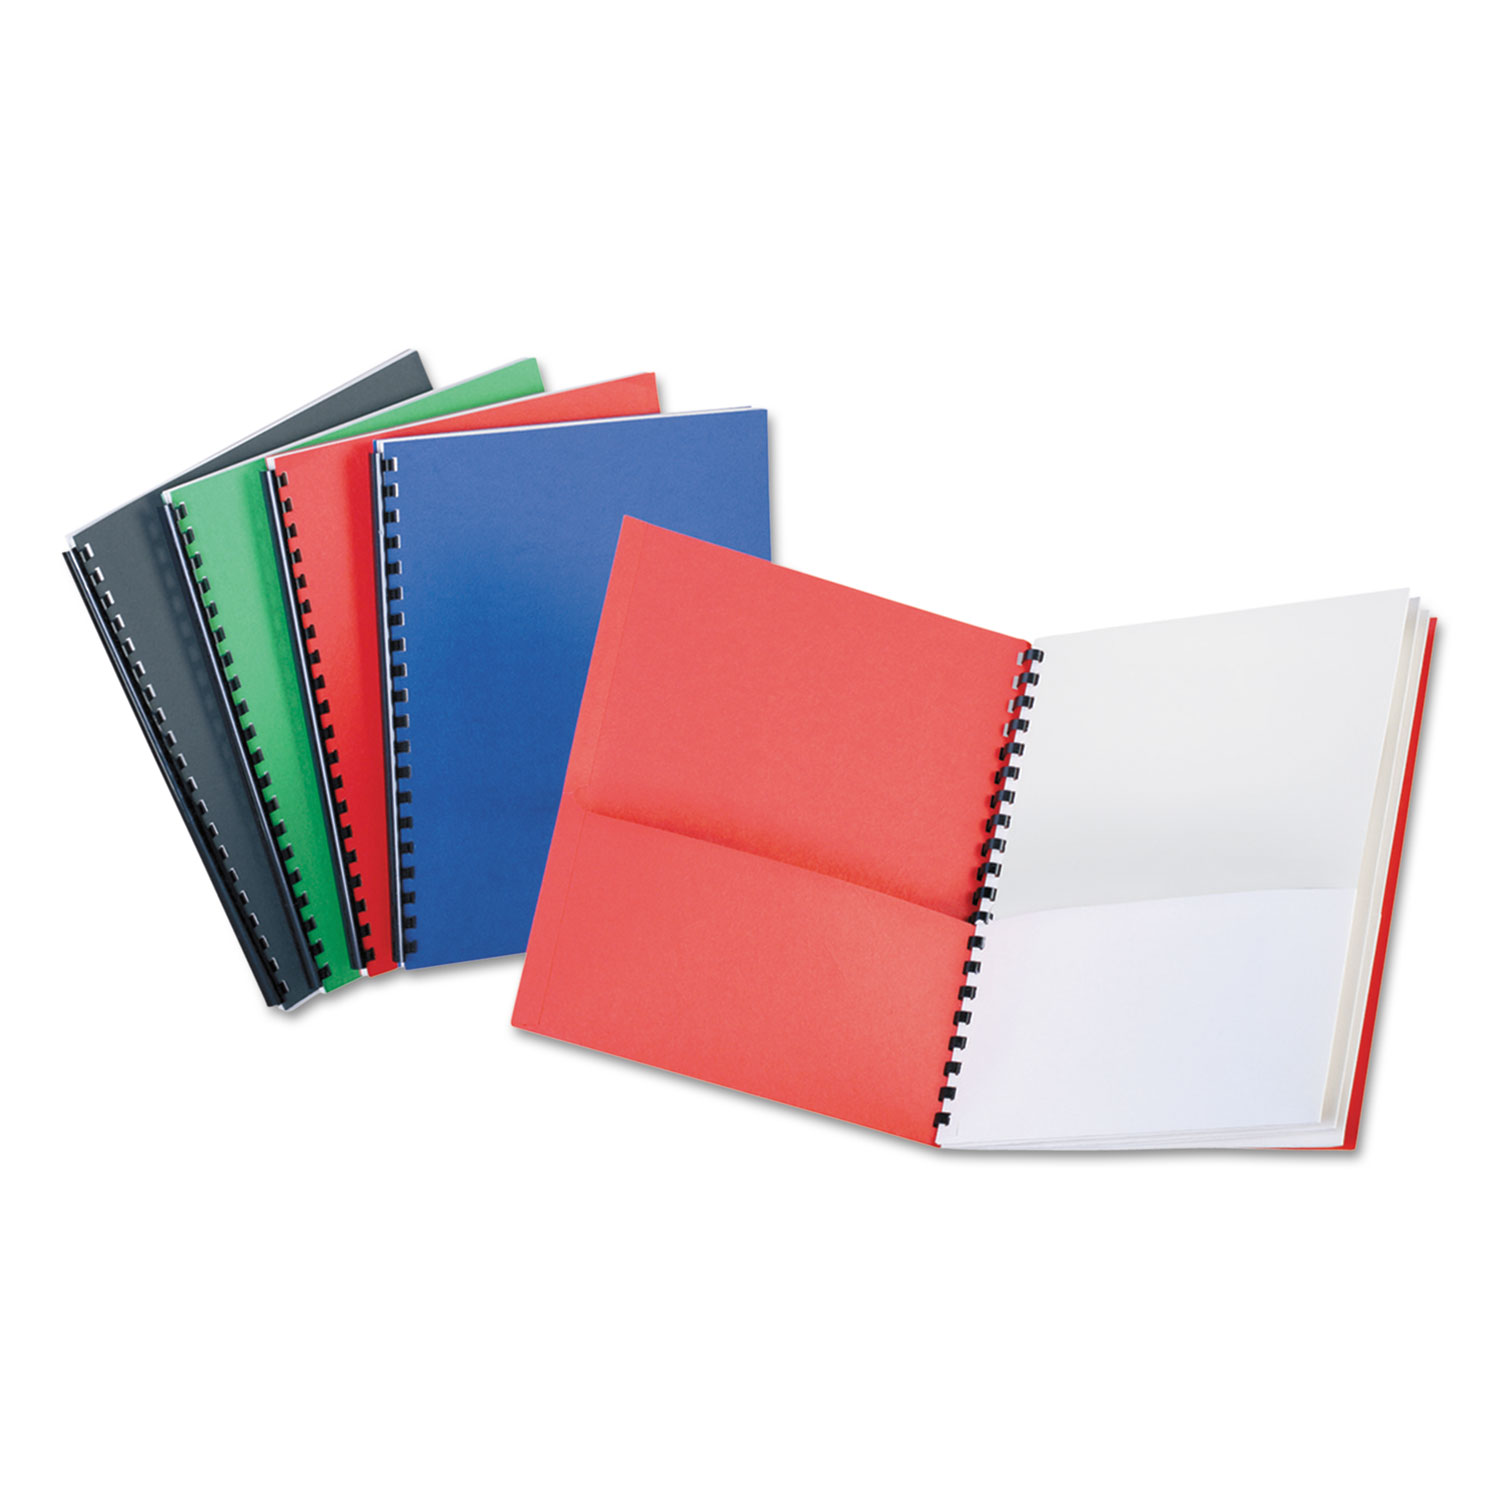 Eight-Pocket Organizer, Embossed Leather Grain, Assorted Colors w/White Pockets